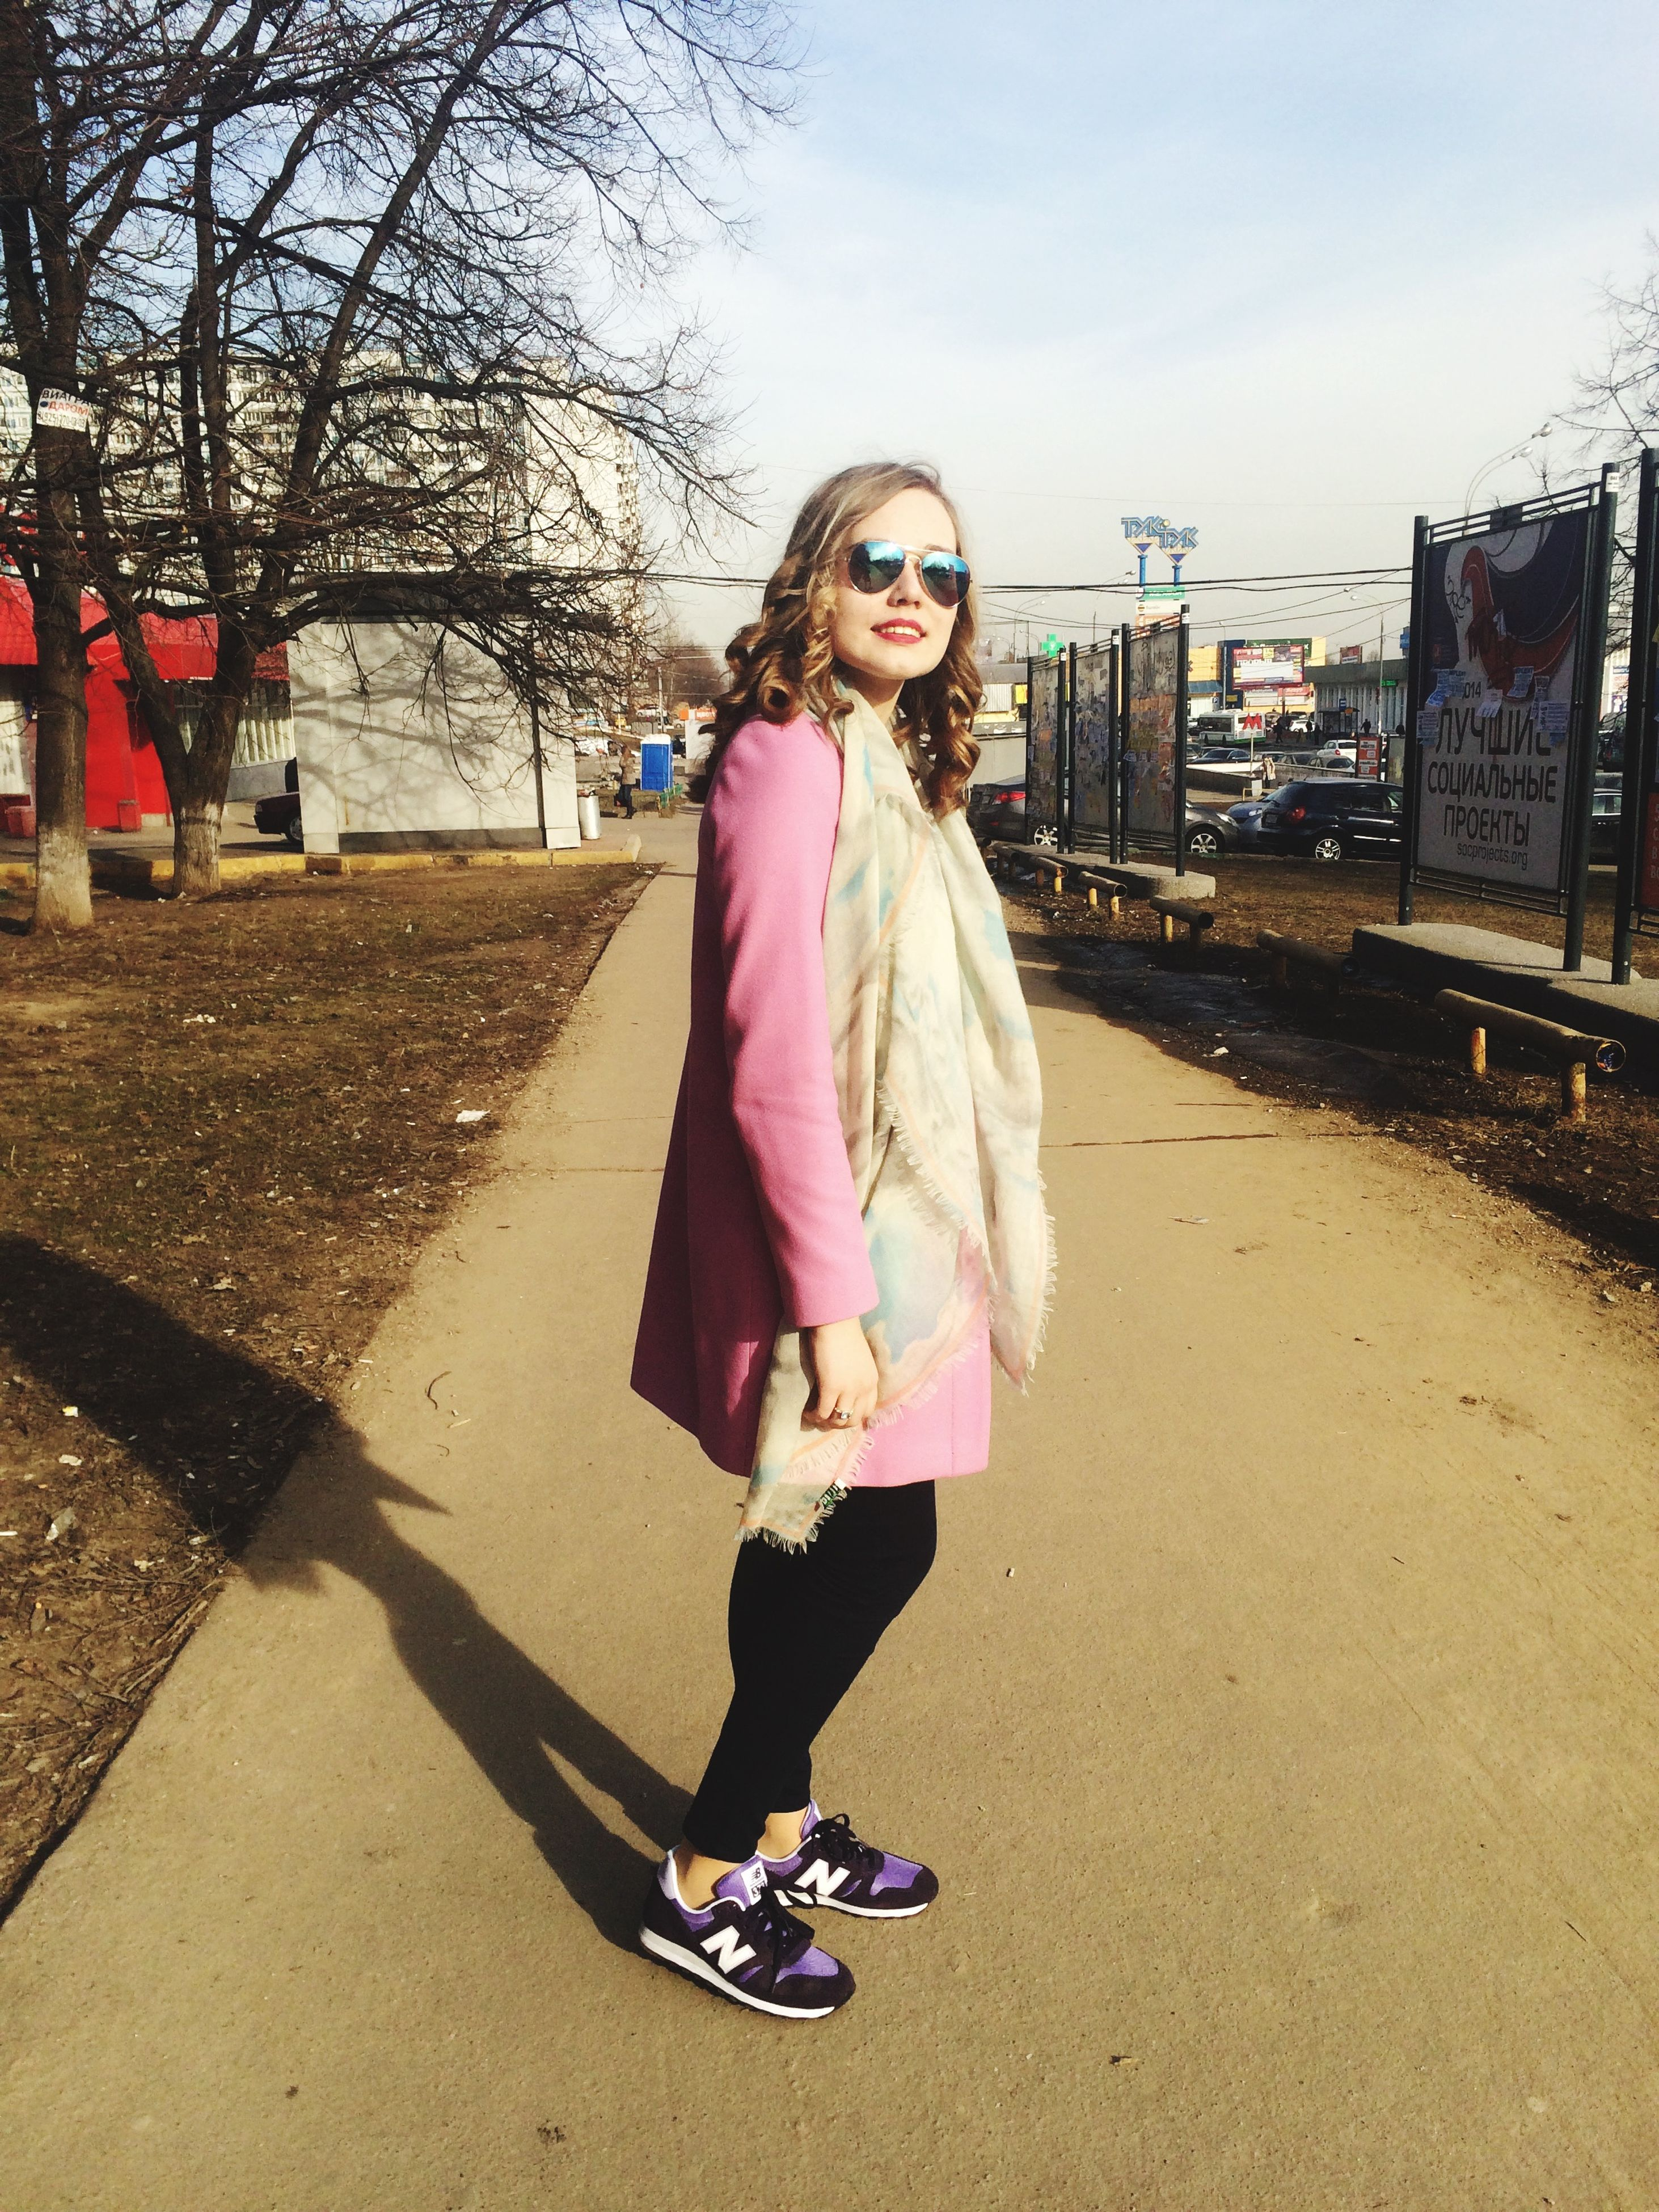 person, young adult, lifestyles, casual clothing, full length, looking at camera, portrait, young women, leisure activity, front view, smiling, happiness, street, road, sunglasses, standing, transportation